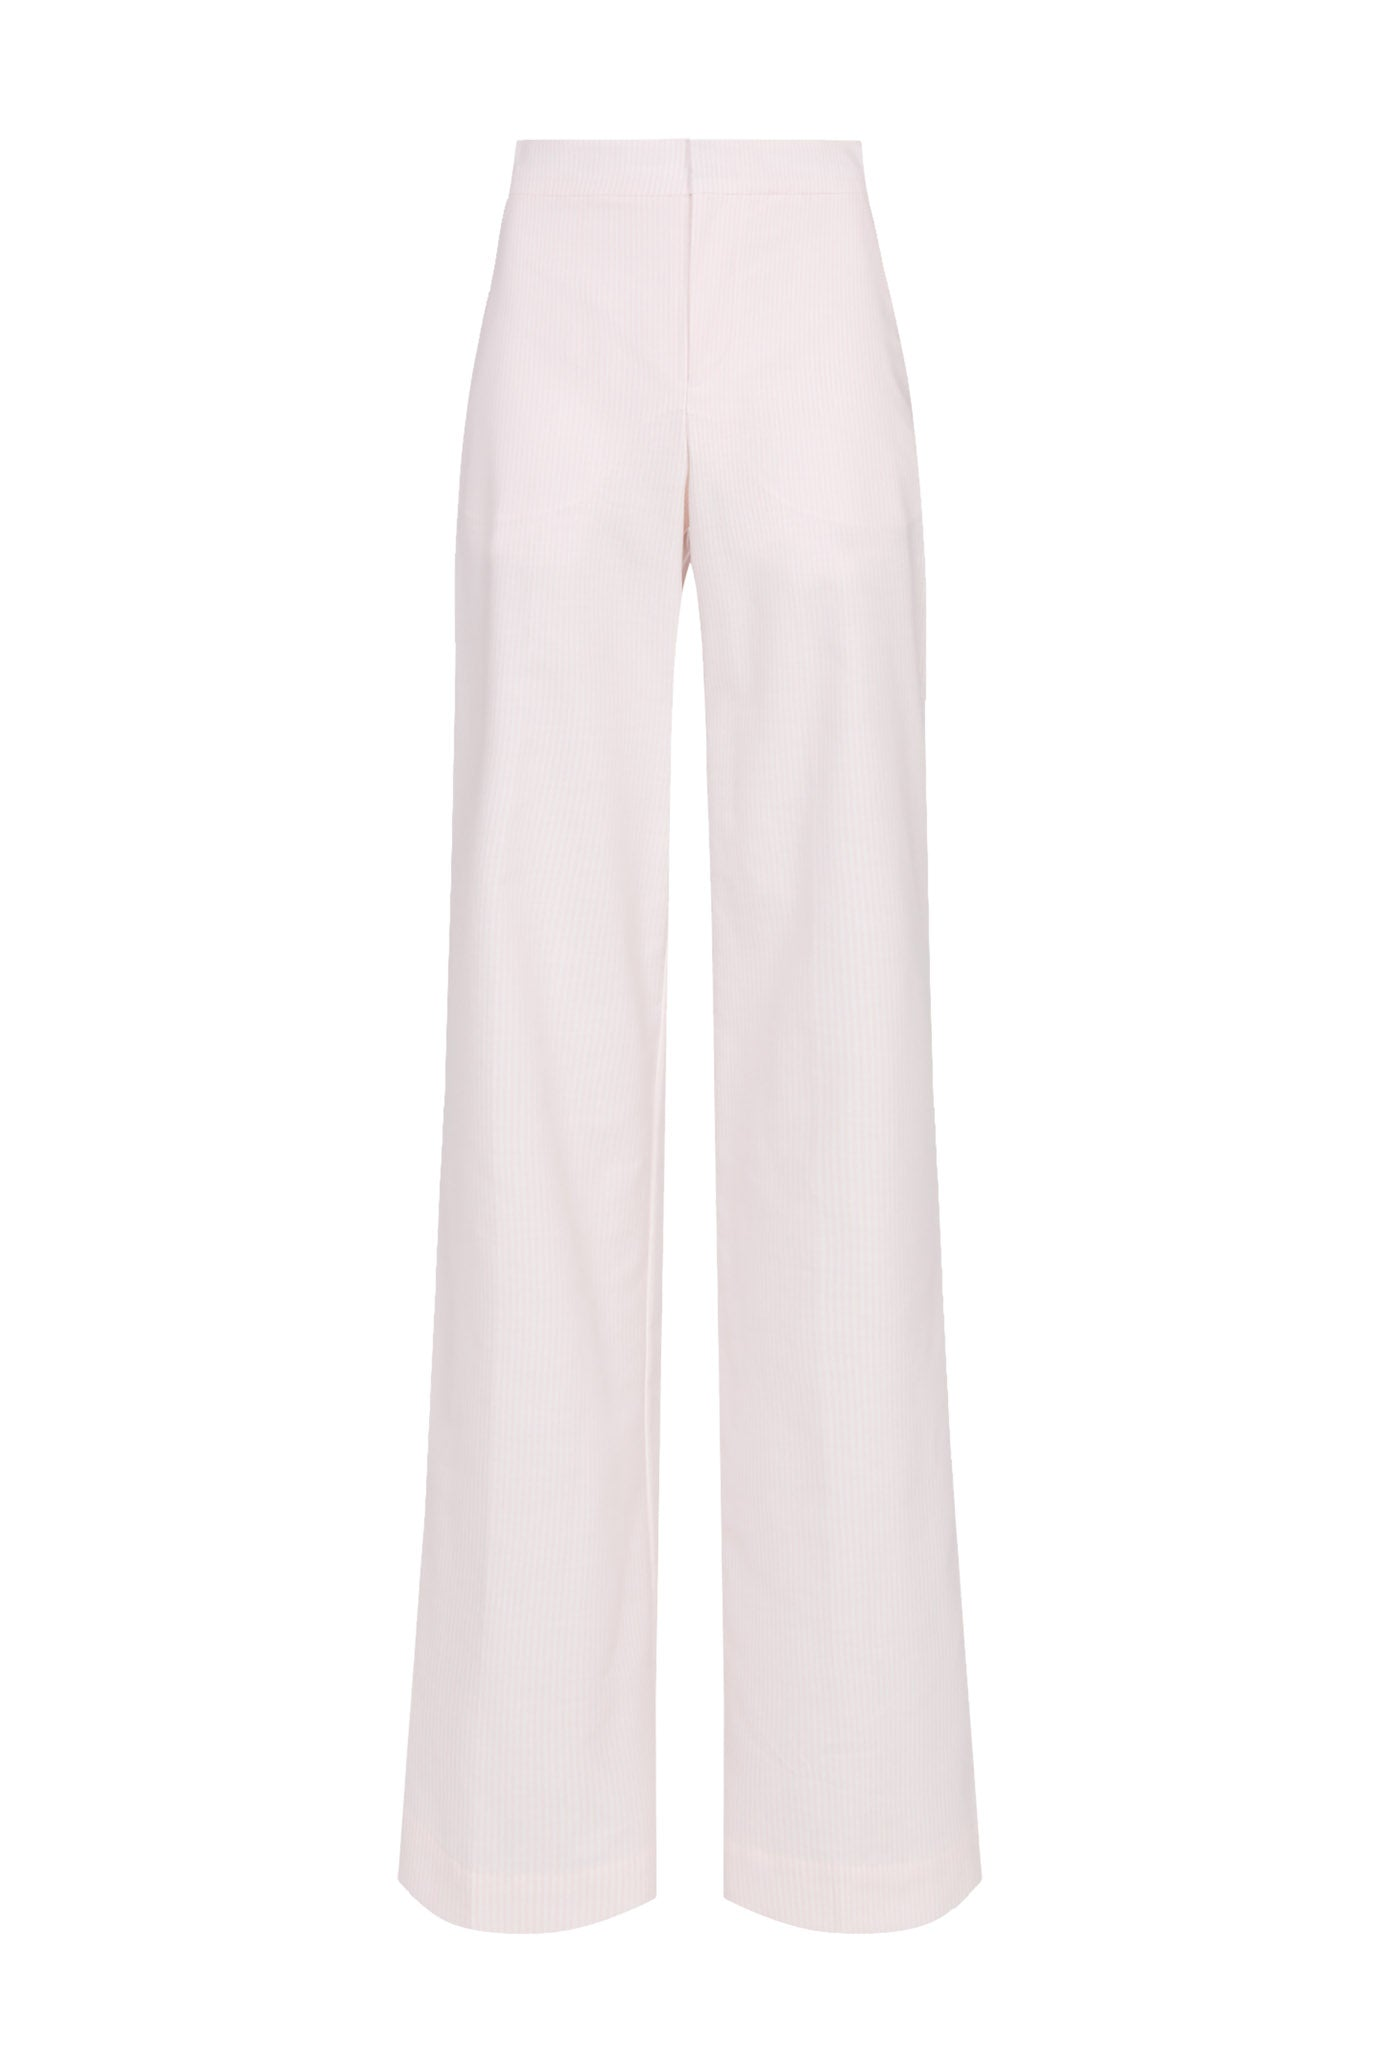 The Camilla Trousers - Pale Pink Stripe Cotton - SERENA BUTE